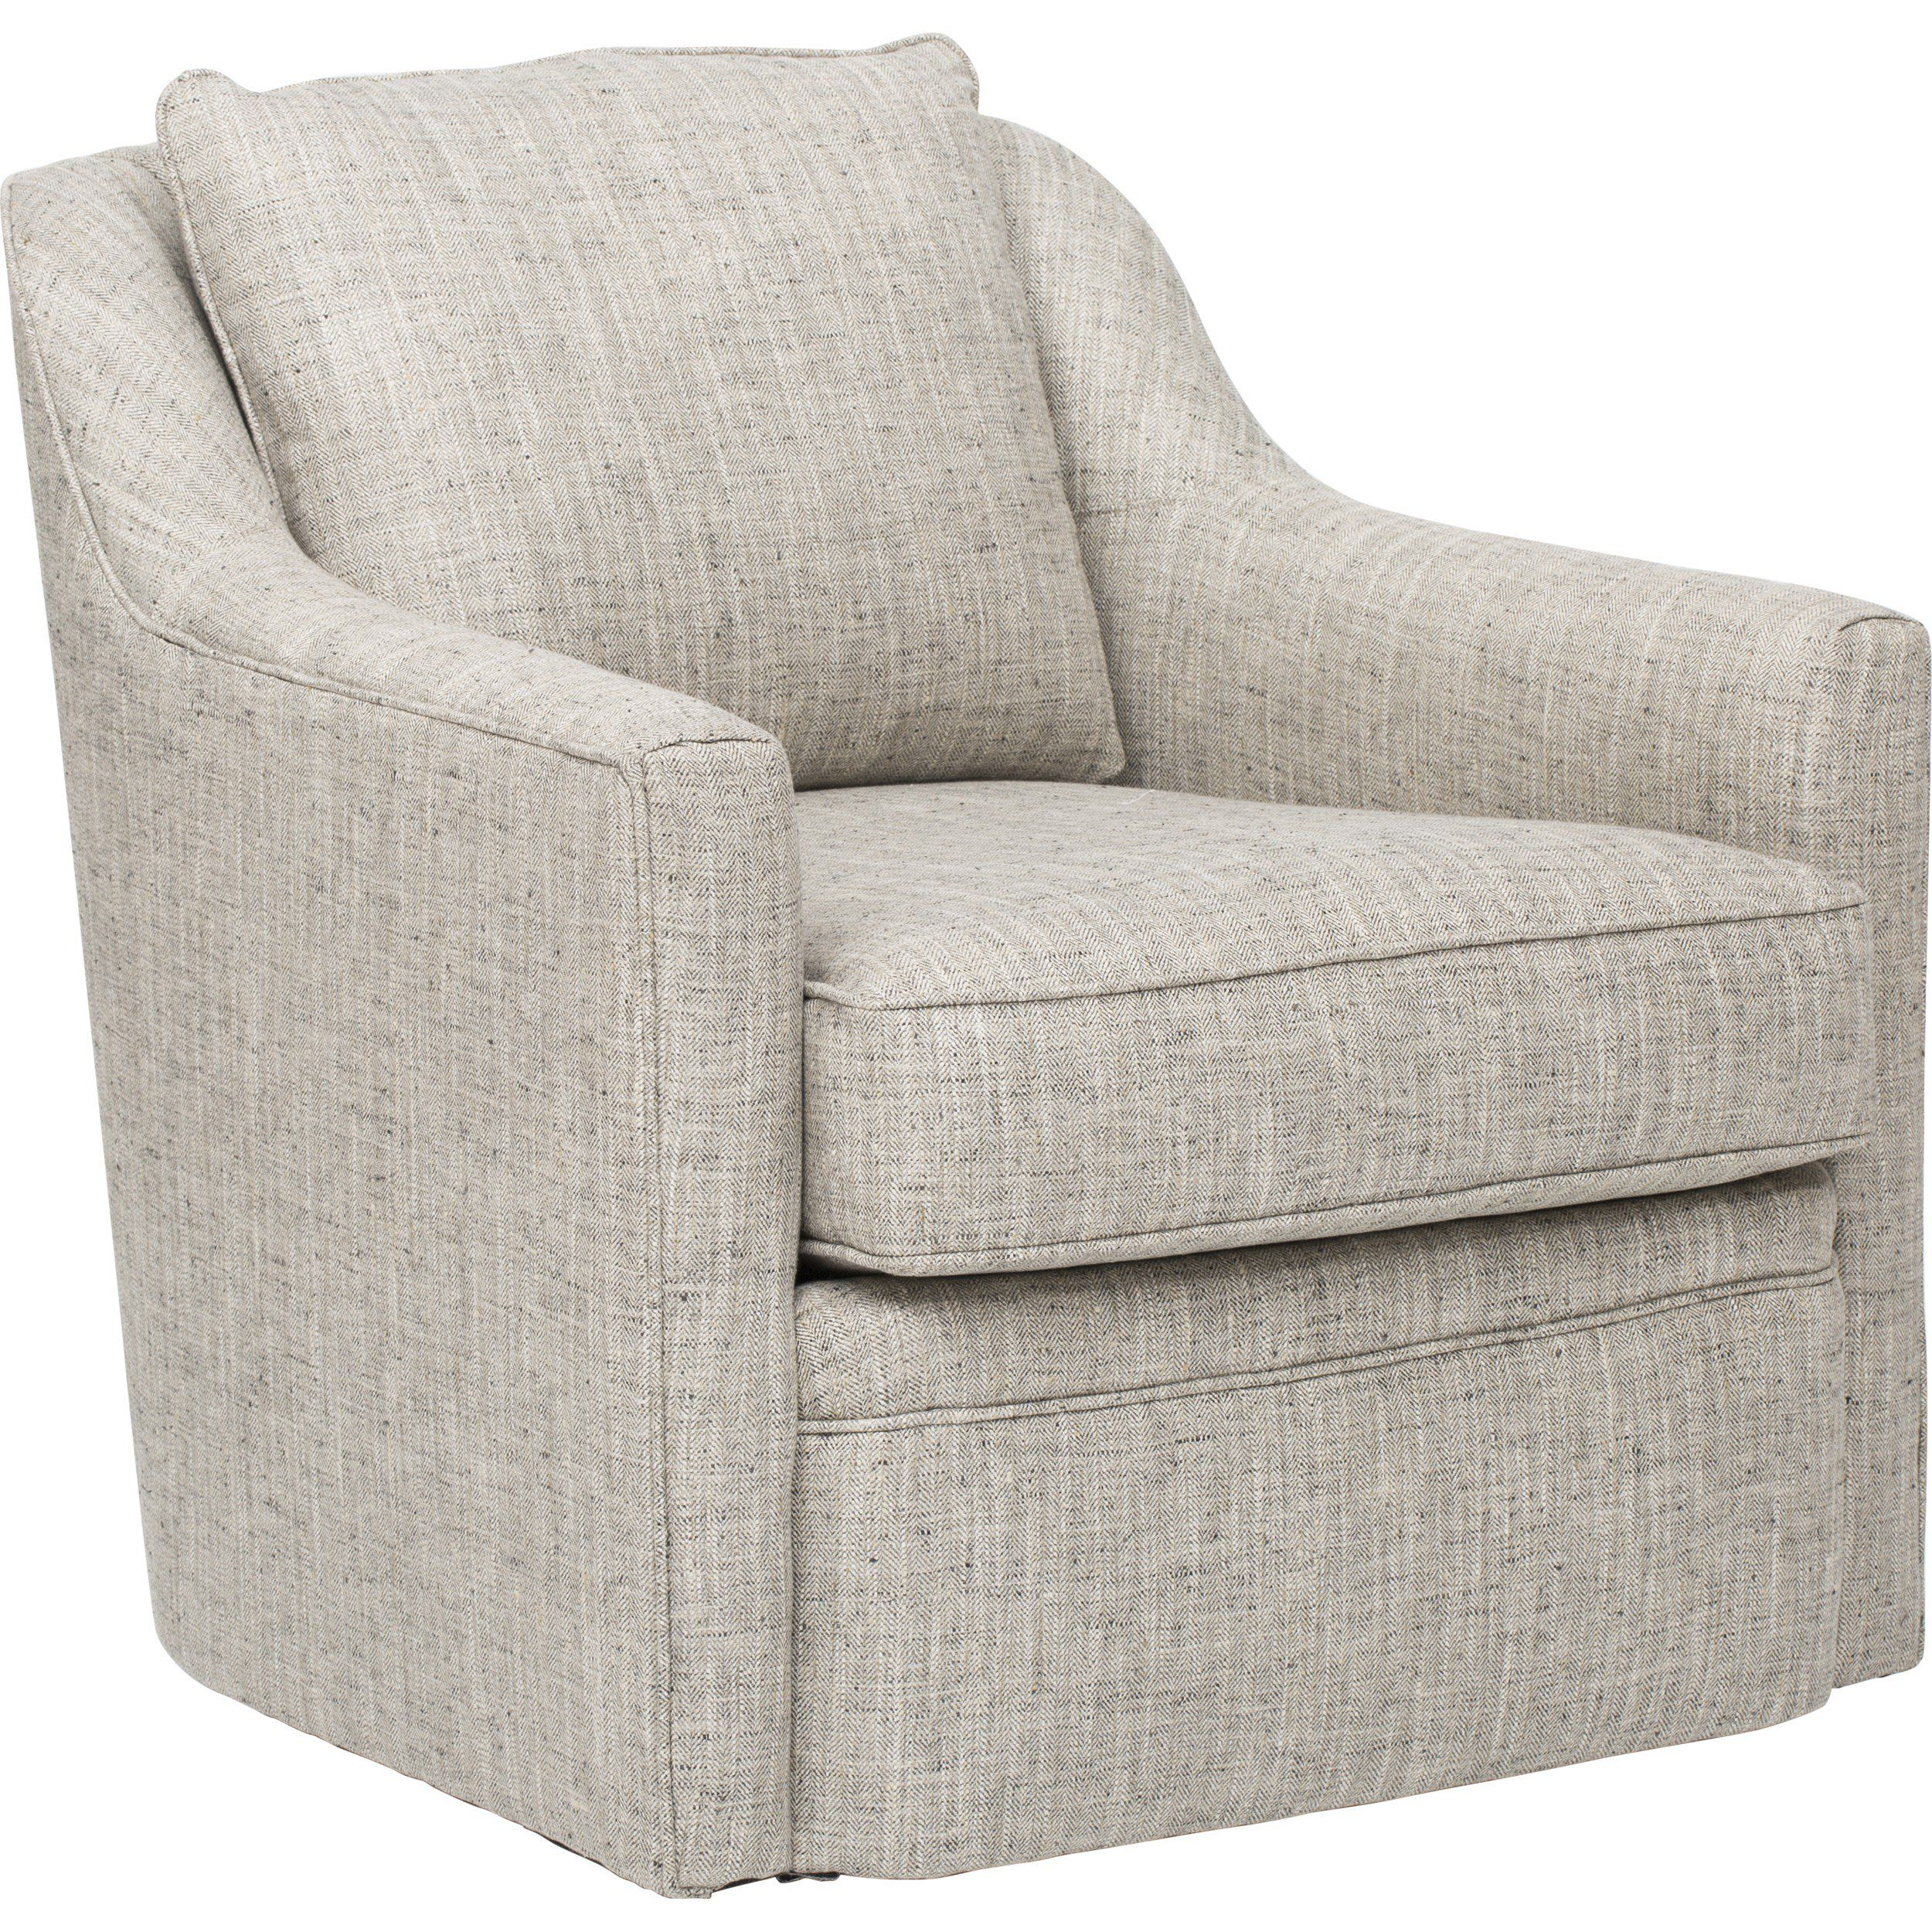 Hollins Swivel Chair | Living Room | Pinterest | Swivel Chair, Chair Within Nichol Swivel Accent Chairs (Image 6 of 20)